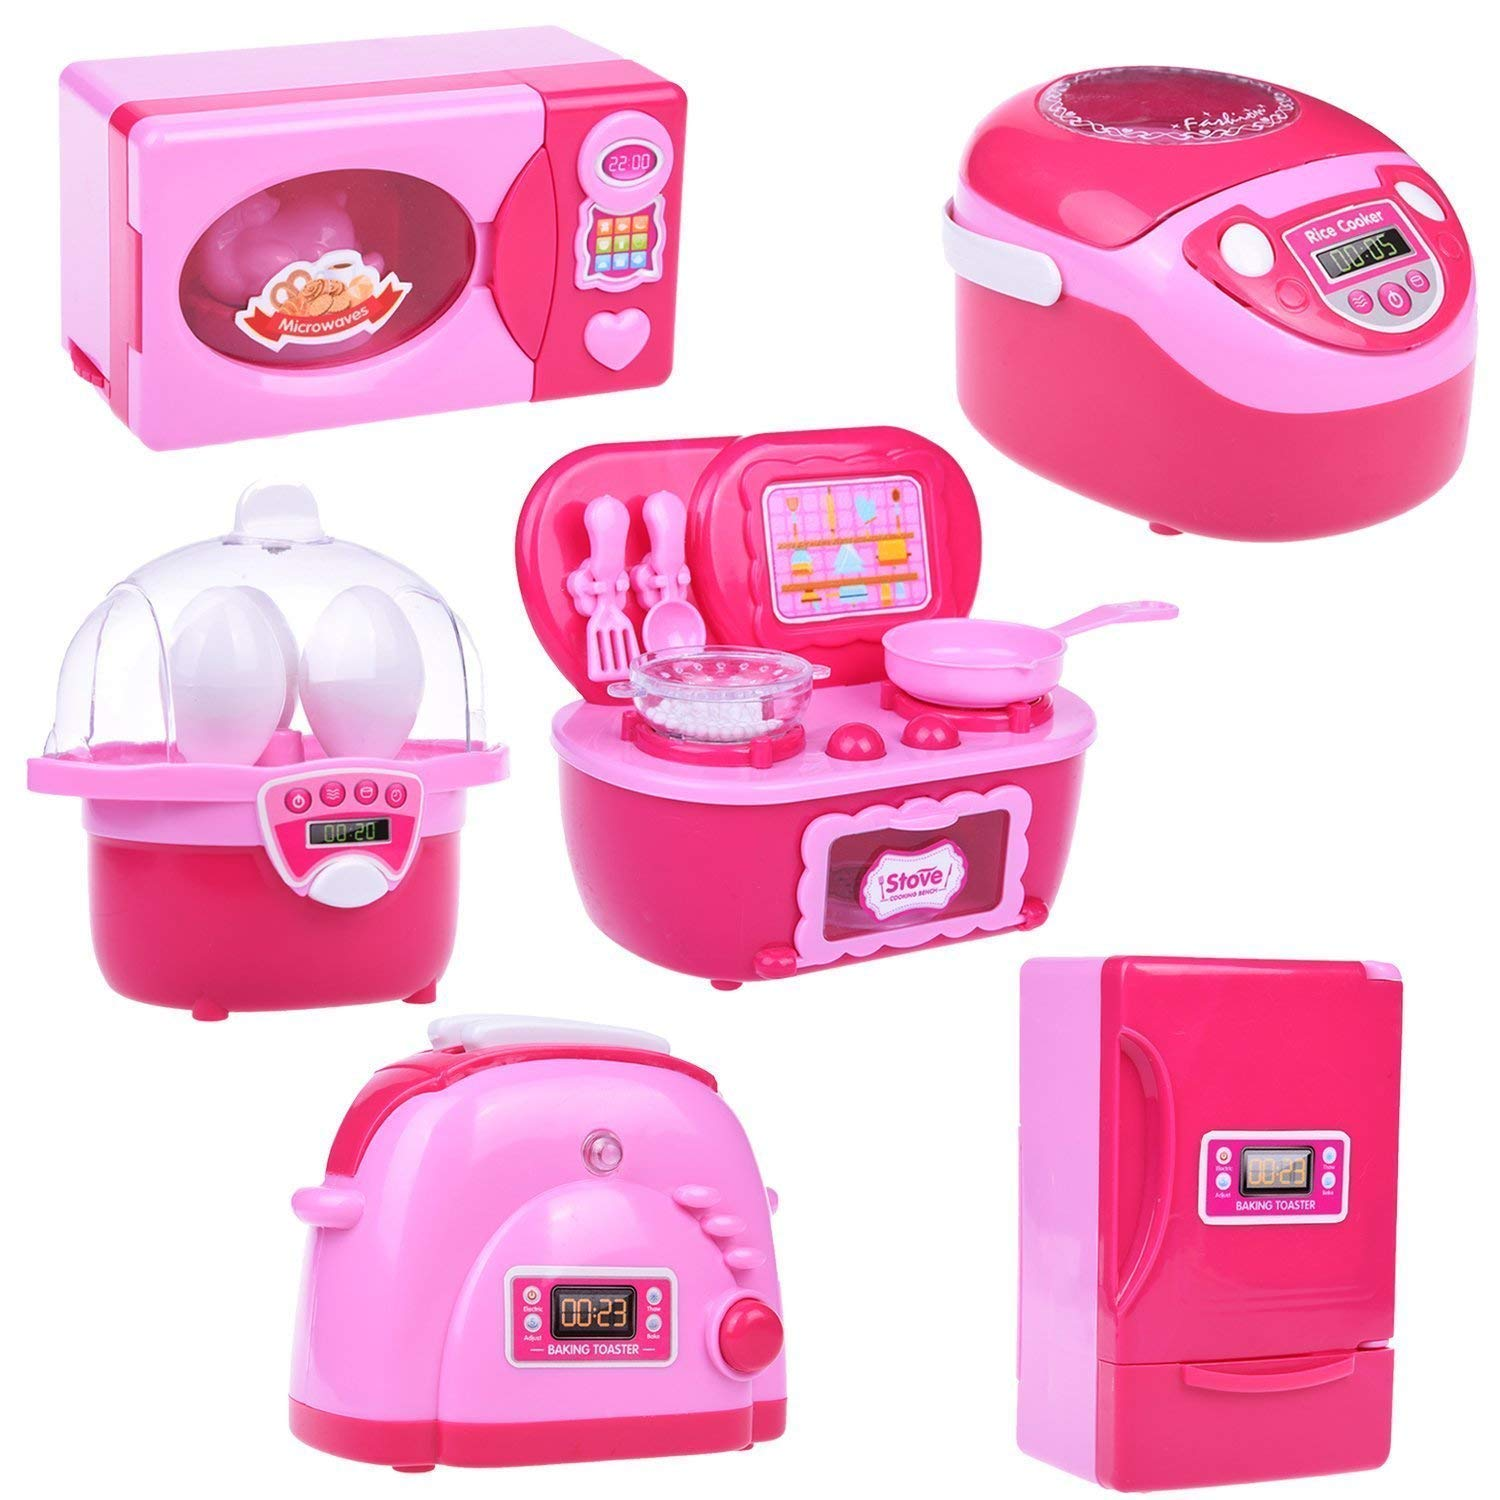 Kitchen Toys for Kids, 6PCs Mini Electric Simulation Play Kitchen Accessories Inculiding Microwave Oven, Toaster, Refrigerator, Rice Cooker, Egg Stepper, Pink Kids Cooking Set Appliances for Girls by FUN LITTLE TOYS (Image #1)